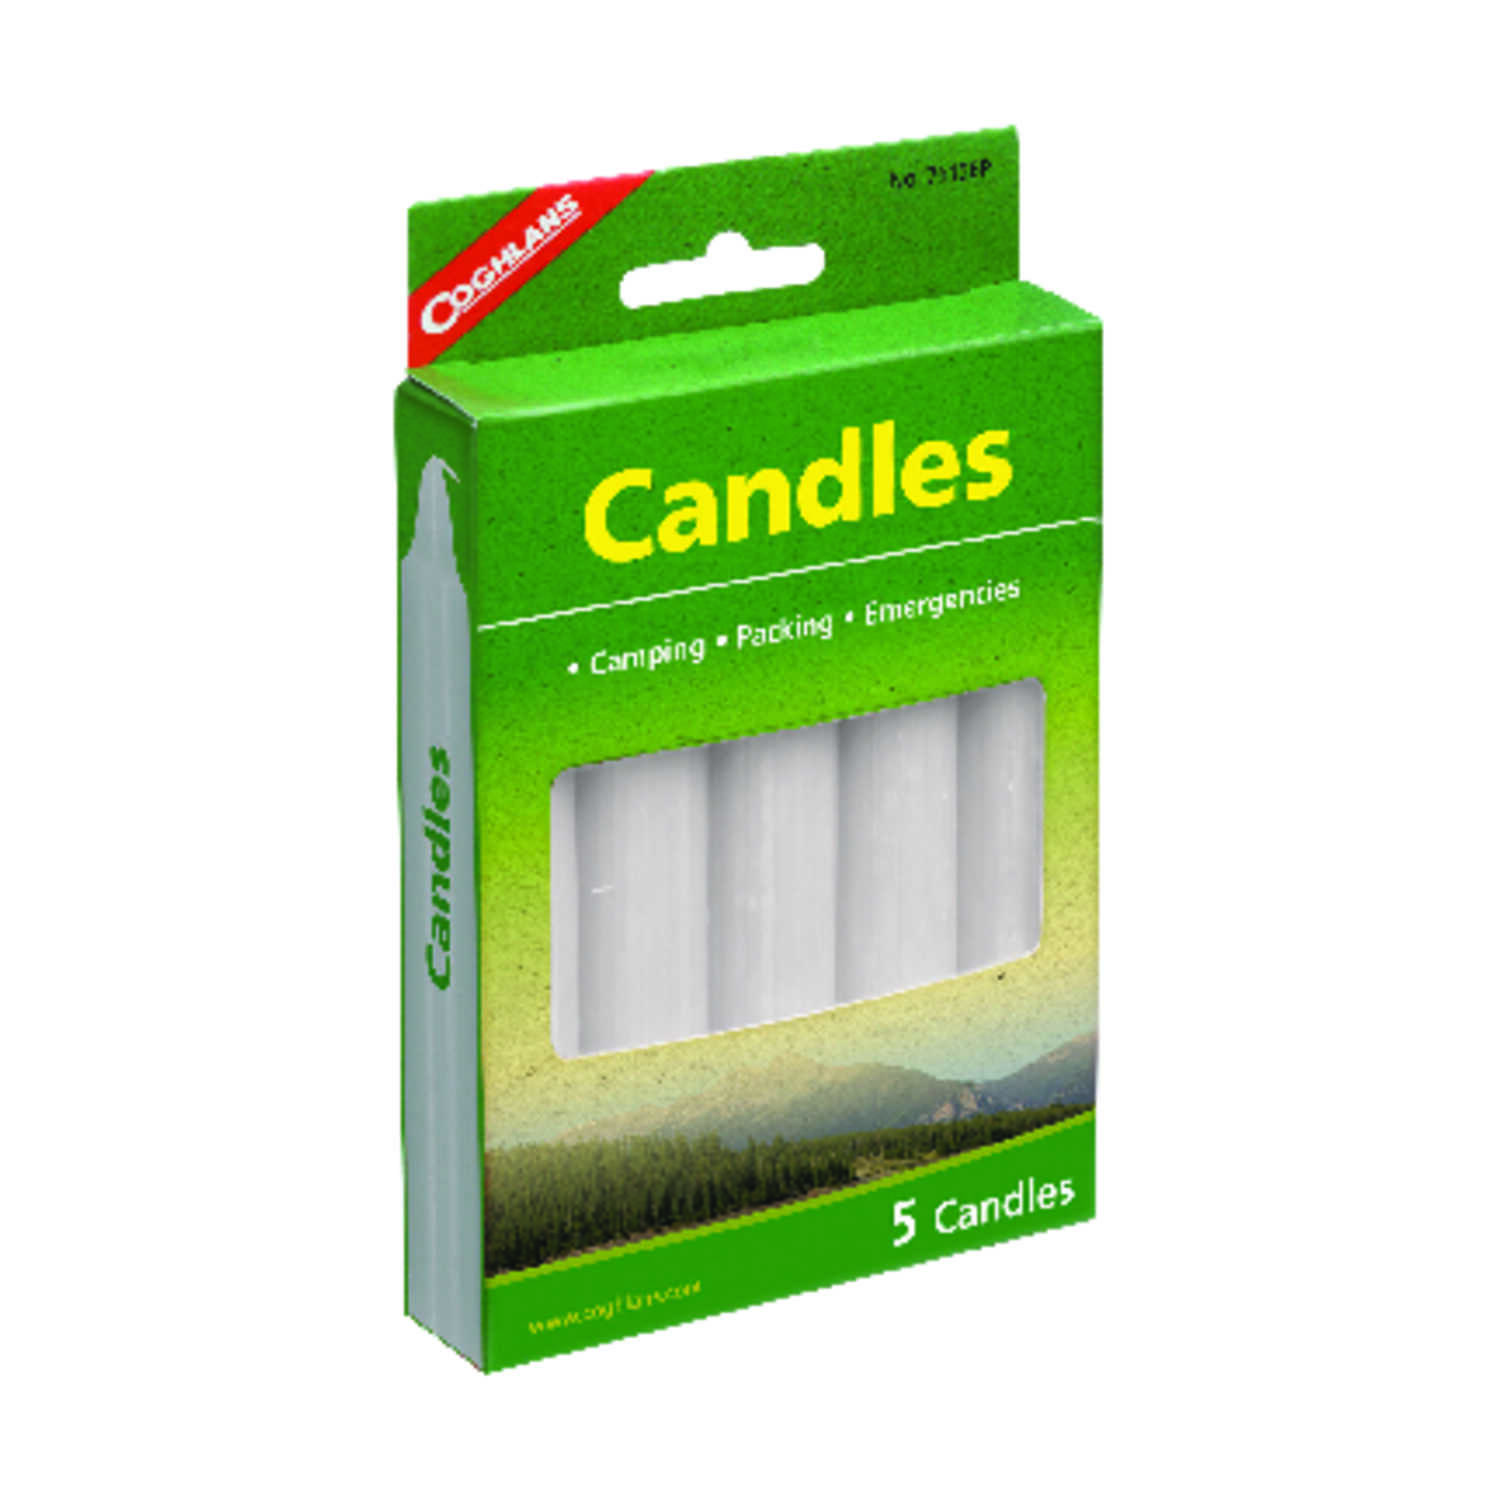 Coghlan's  Candles  6.000 in. H x 3/4 in. W x 5 in. L 5 pk